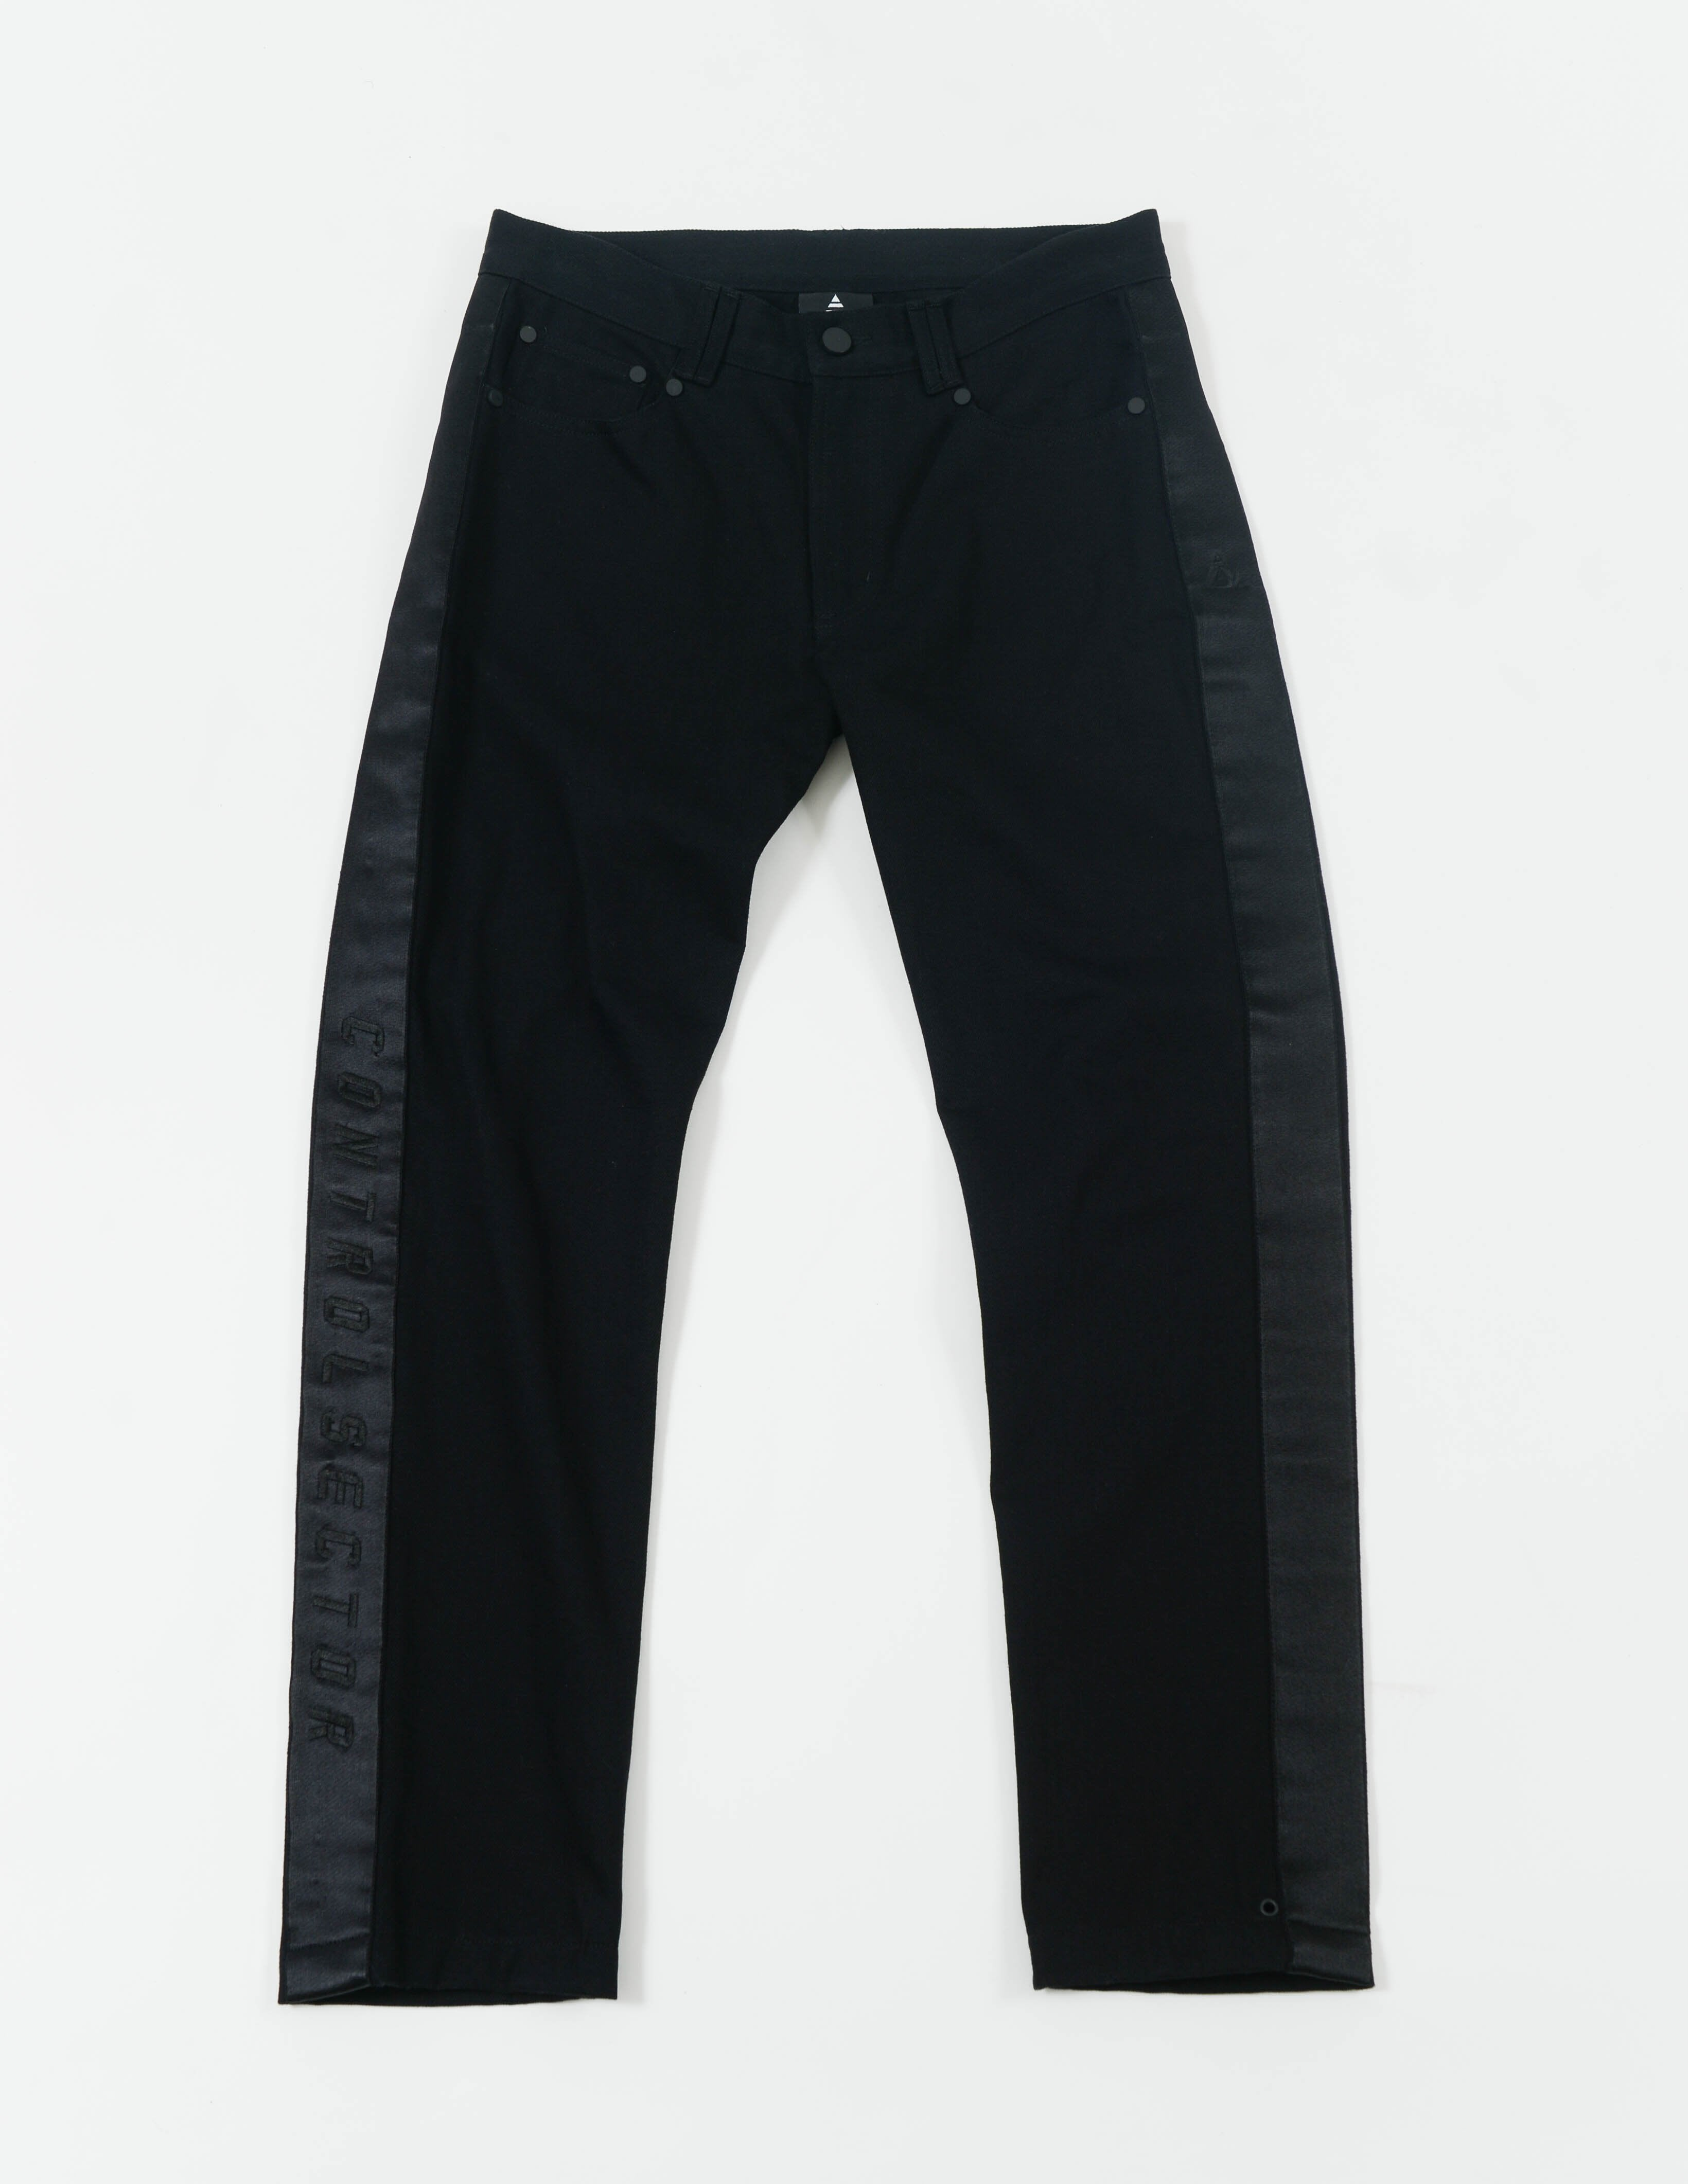 CON1720-01 CHILDREN OF NEVER - DENIM - BLACK